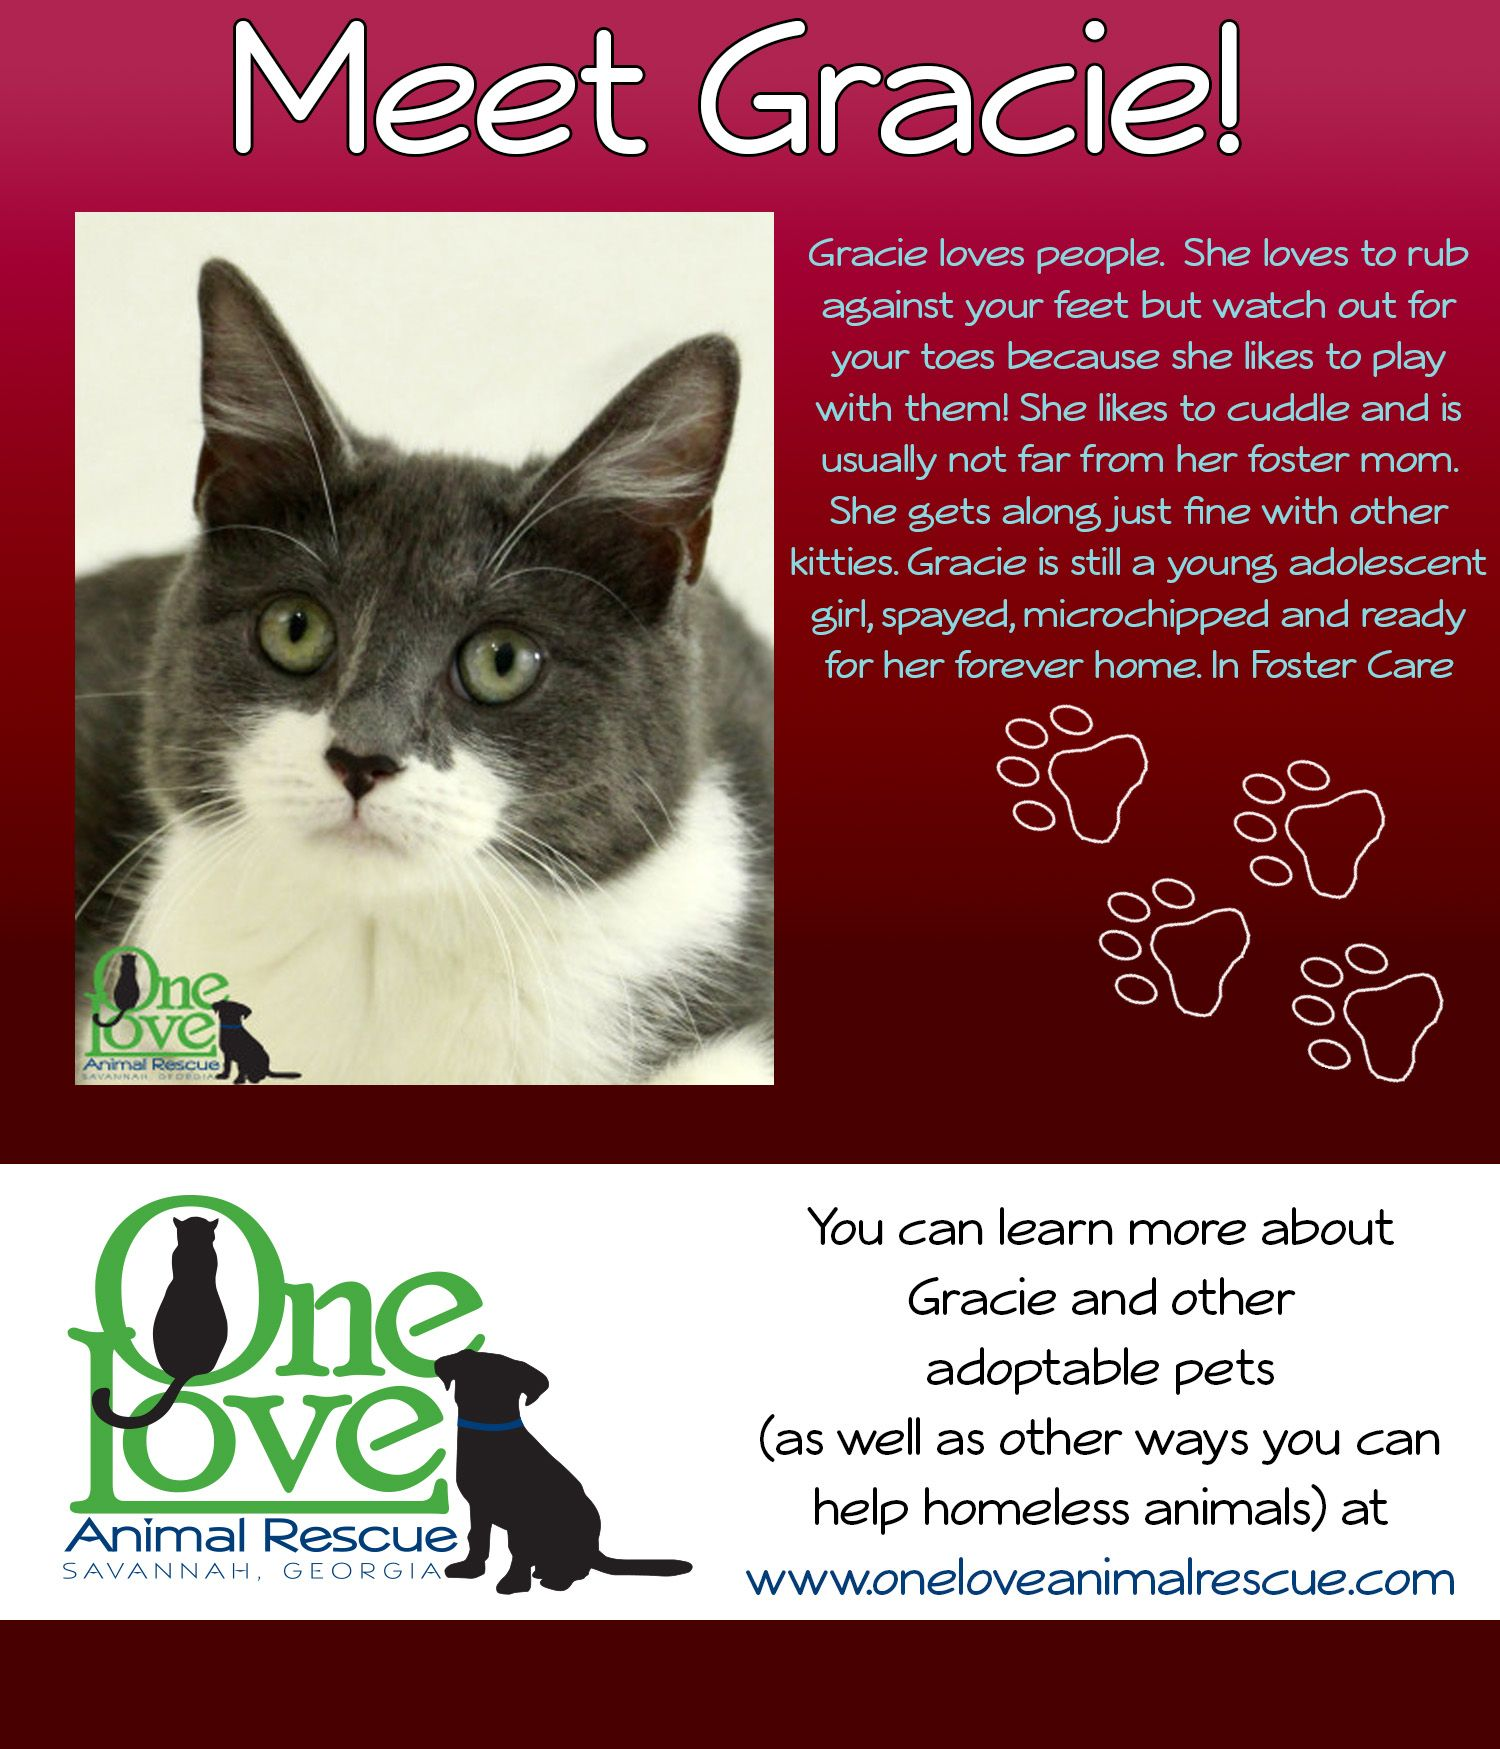 Please Submit Your Pre Adoption Application Online At Http Oneloveanimalrescue Com Pre Adoption Application To Schedule An Foster Mom Love People Adoption